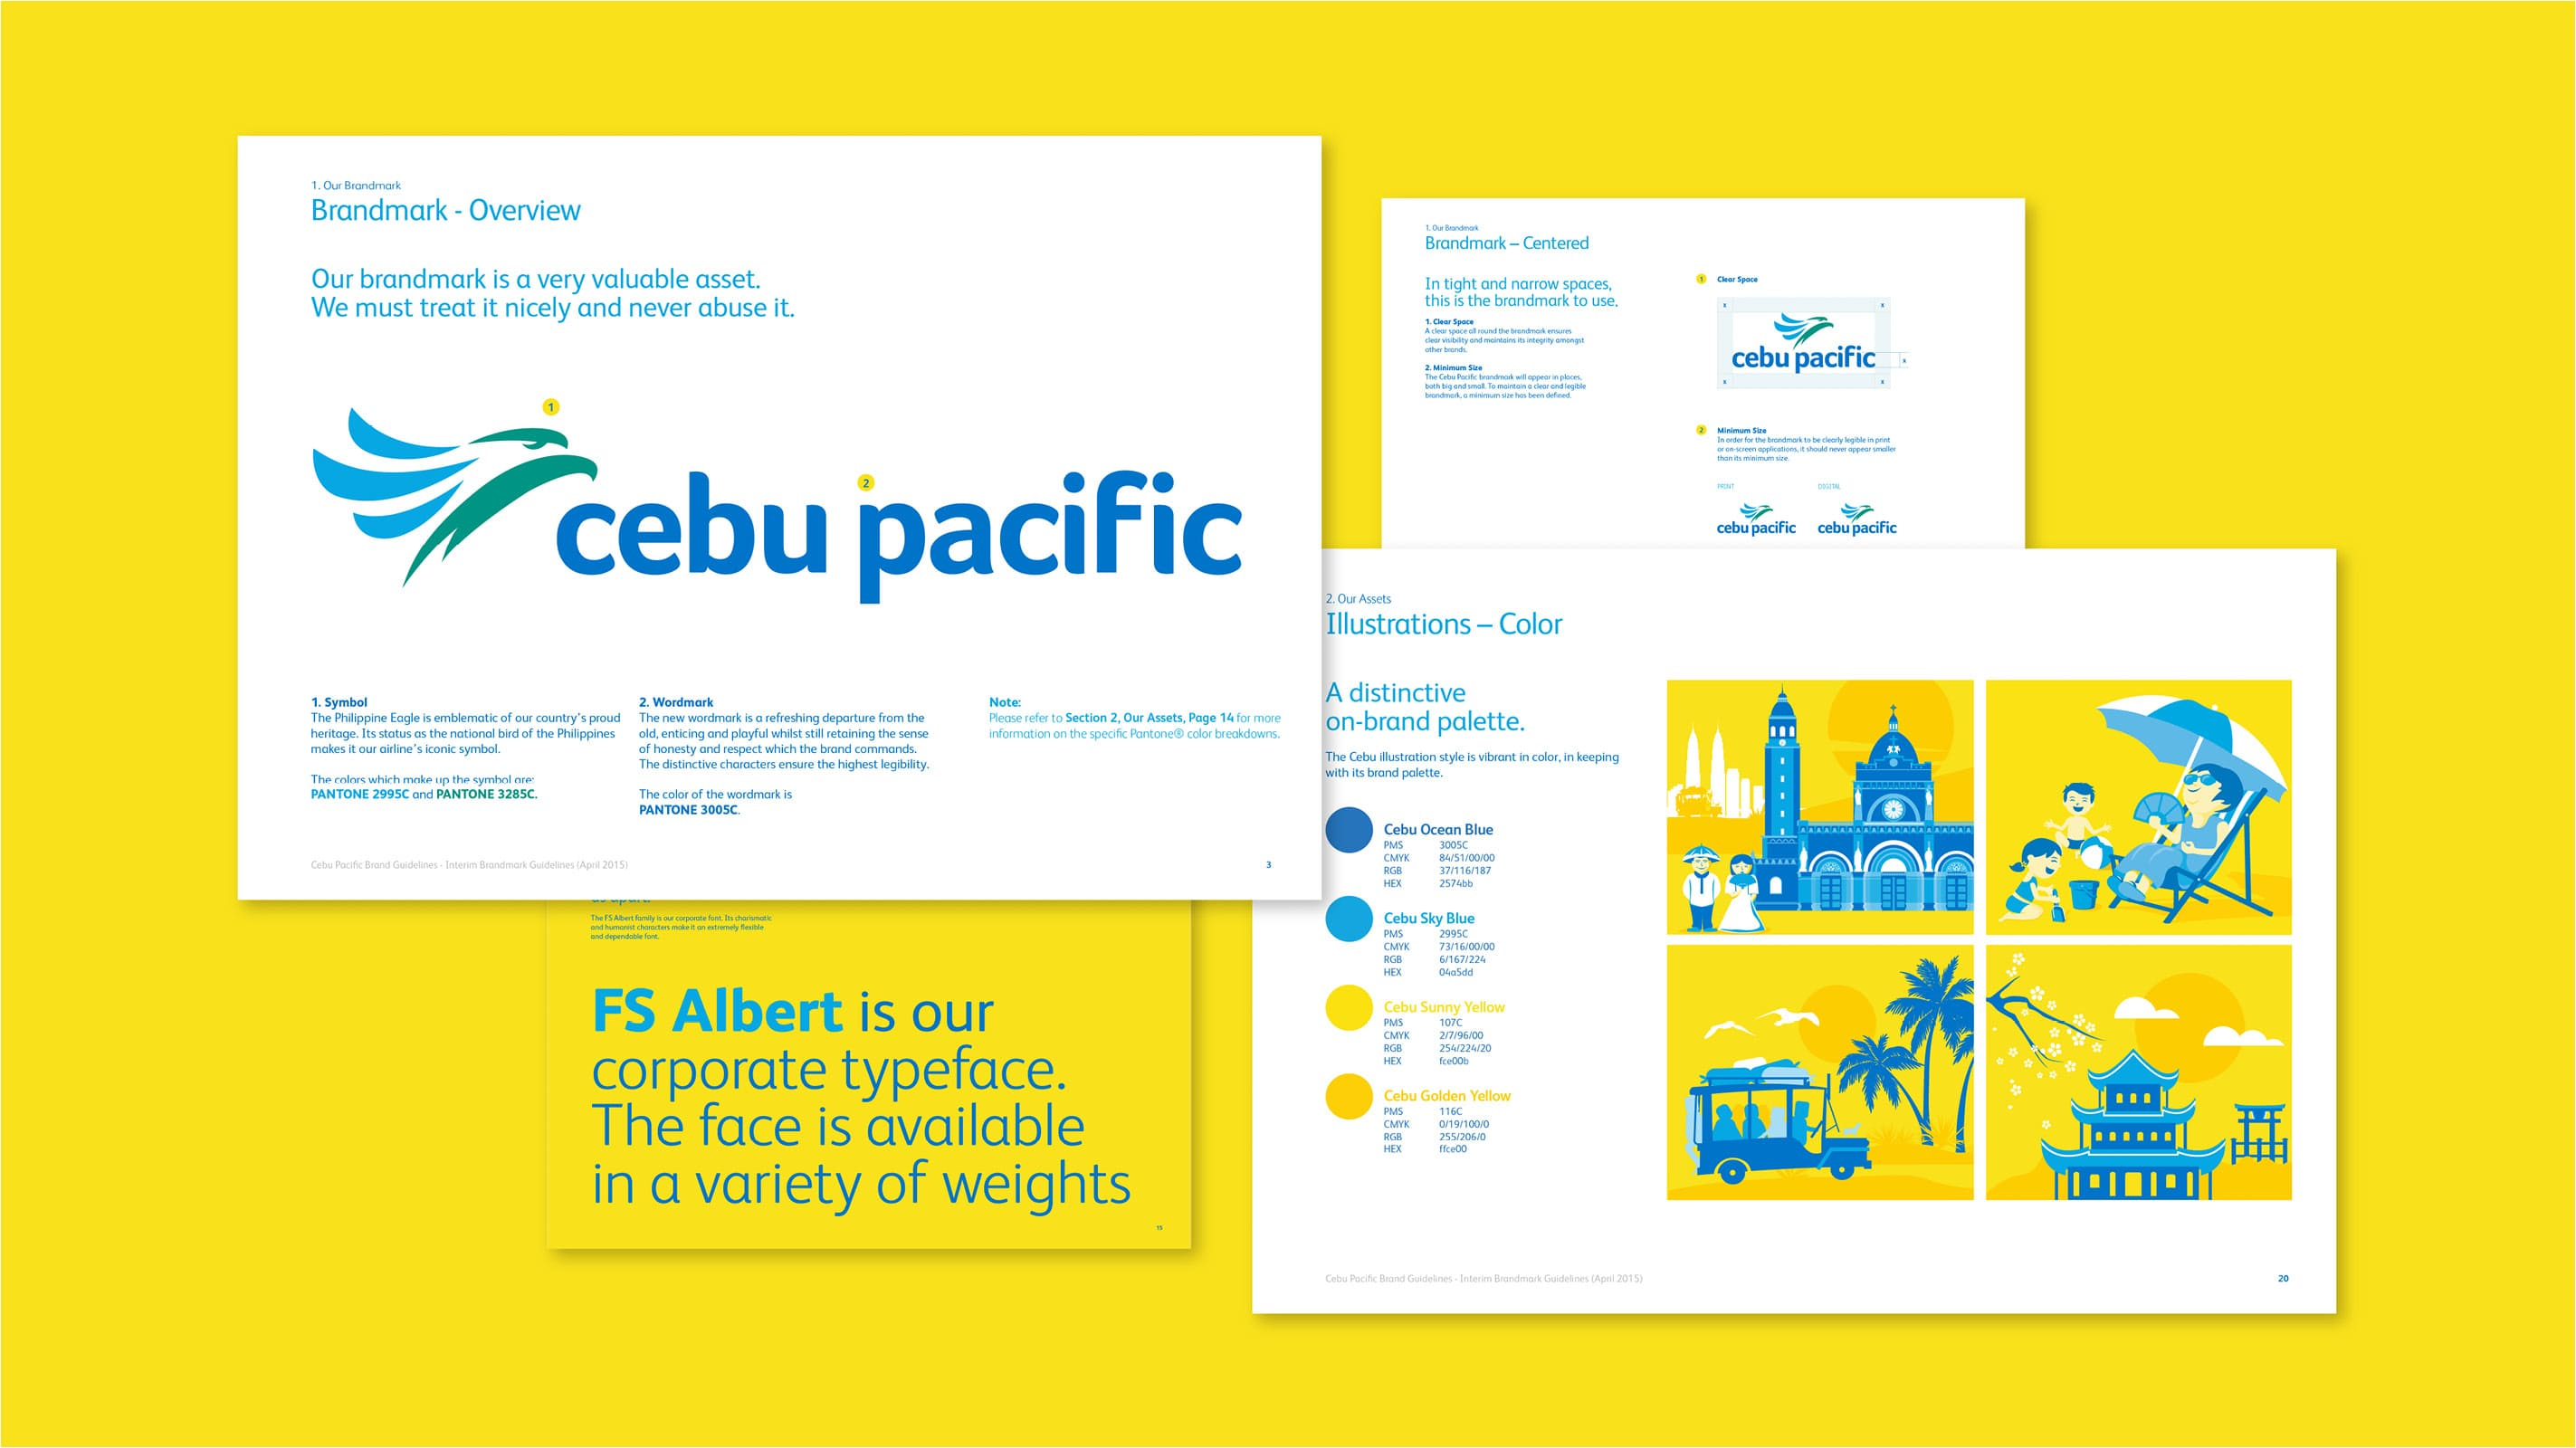 https://bonseydesign.com/wp-content/uploads/2019/10/Cebu-Pacific-4_6.jpg